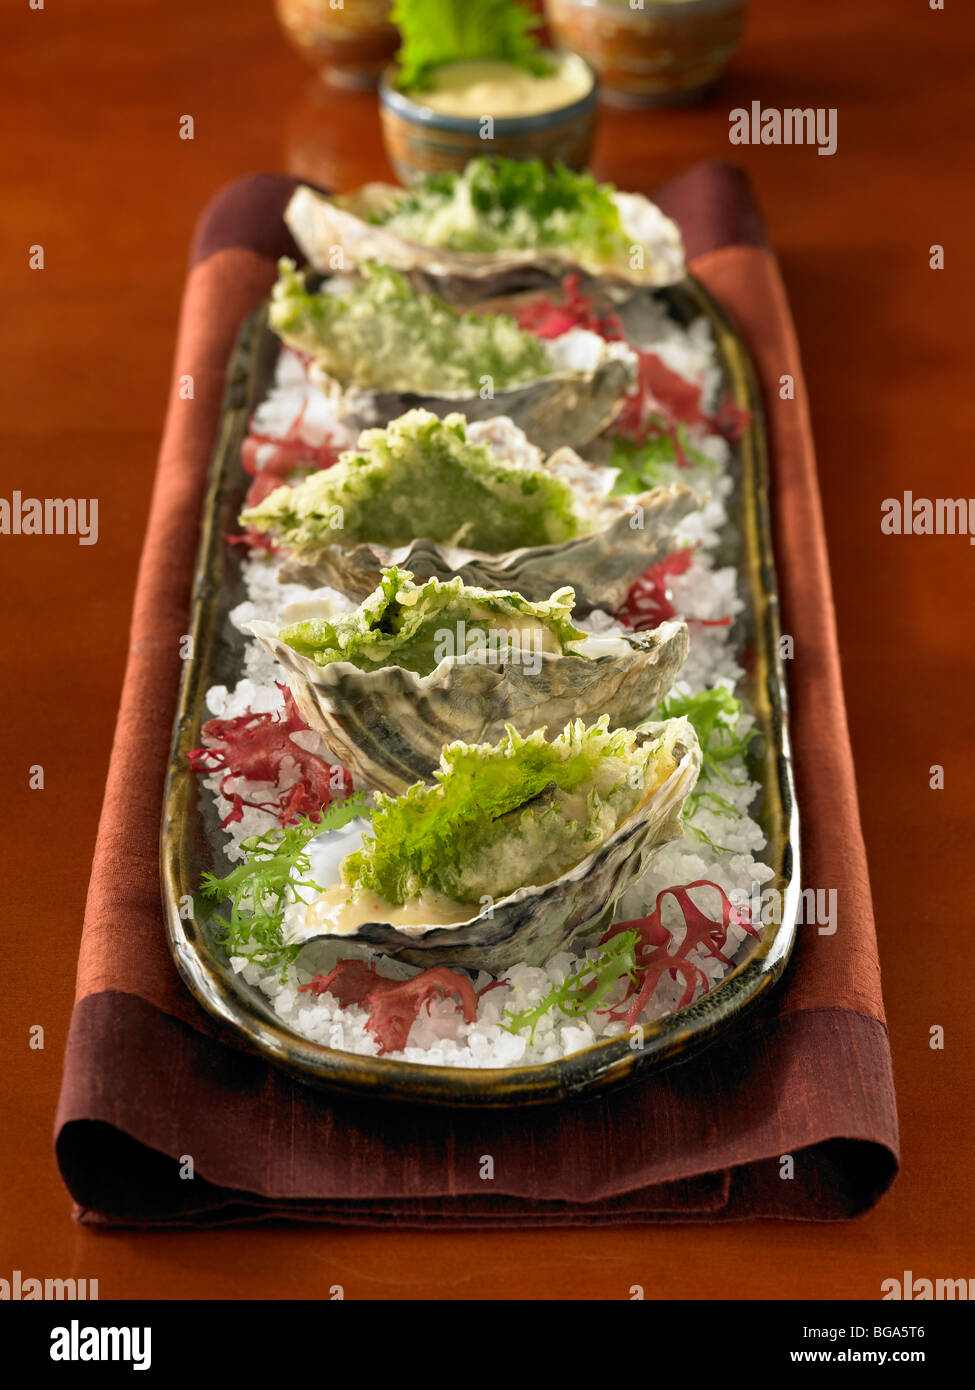 Deep fried oysters in half shell in course salt on plate - Stock Image